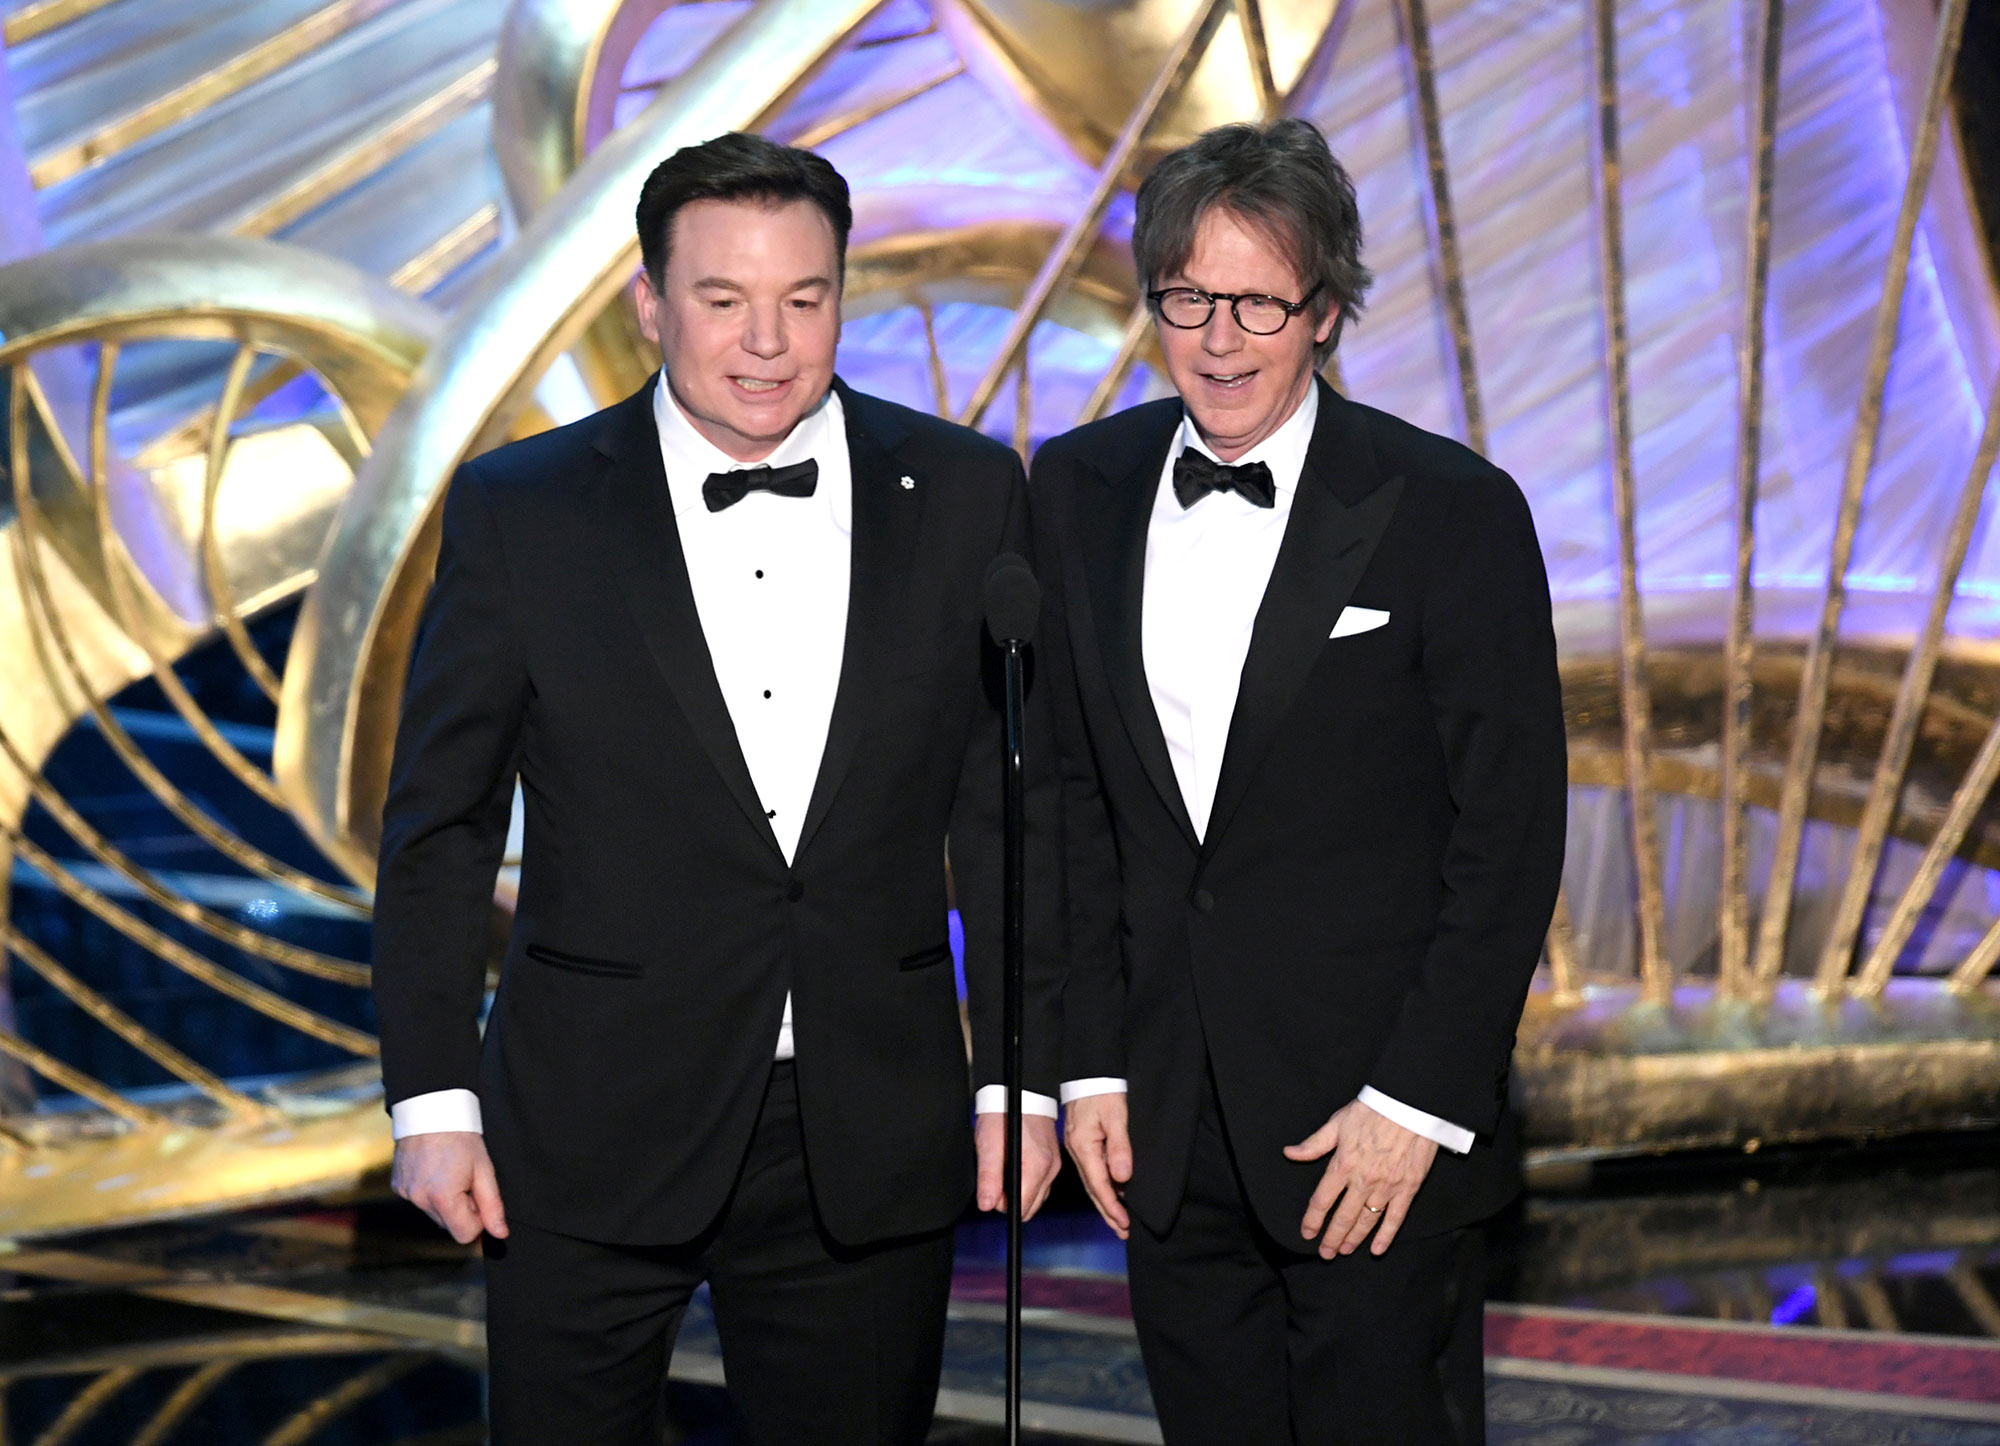 """oscars 2019 Mike Myers and Dana Carvey Costars reunited gallery - Mike Myers and Dana Carvey reunited at the 2019 Oscars in February 2019 to introduce a clip for Best Picture nominee Bohemian Rhapsody . The 1992 movie opened with Myers' Wayne and Carvey's Garth head-banging to the Queen song """"Bohemian Rhapsody."""""""